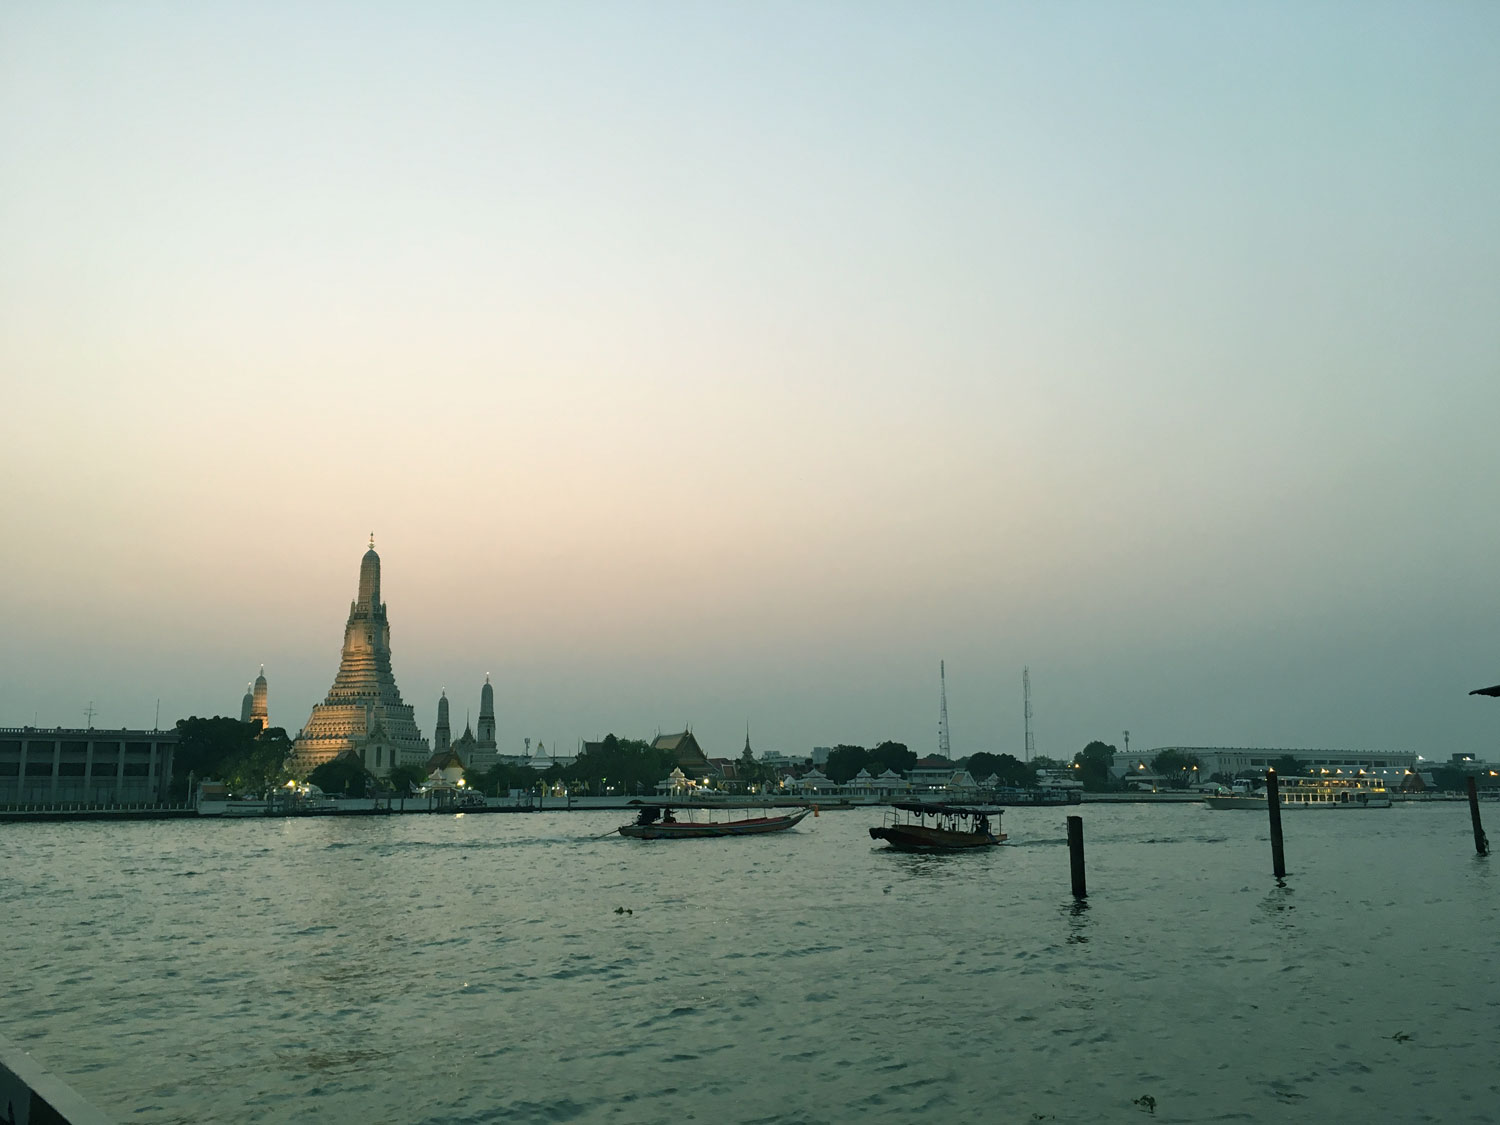 Wat Arun Buddhist temple in Bangkok